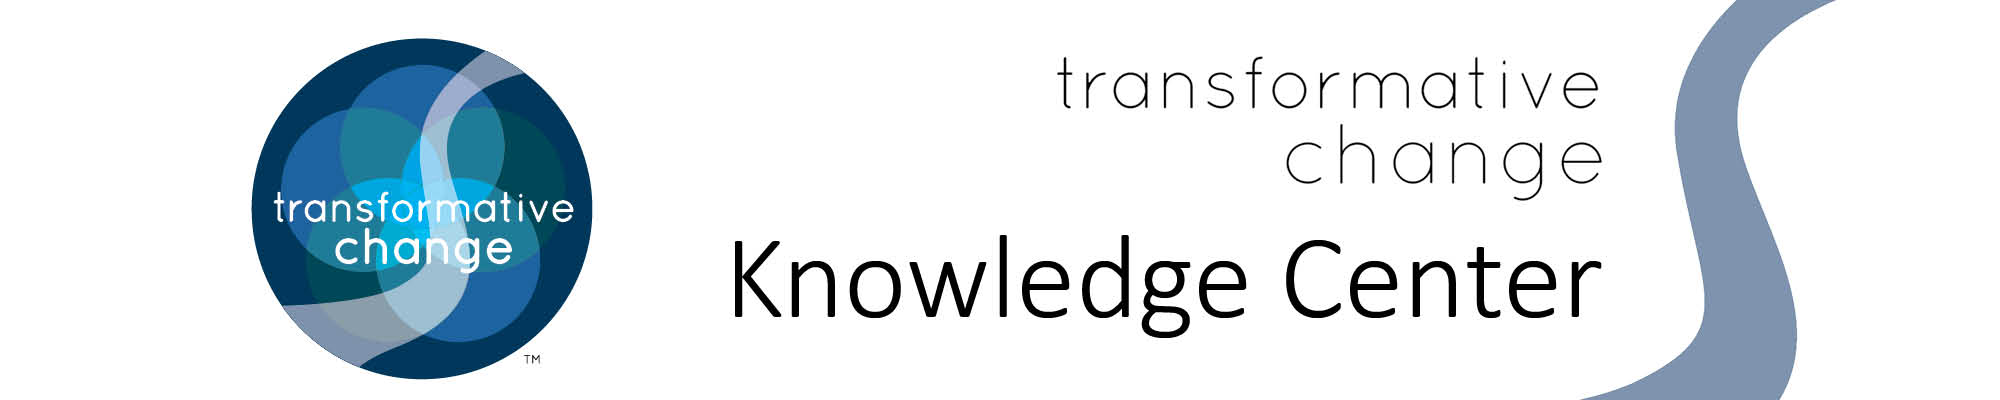 Transformative Change Initiative header image